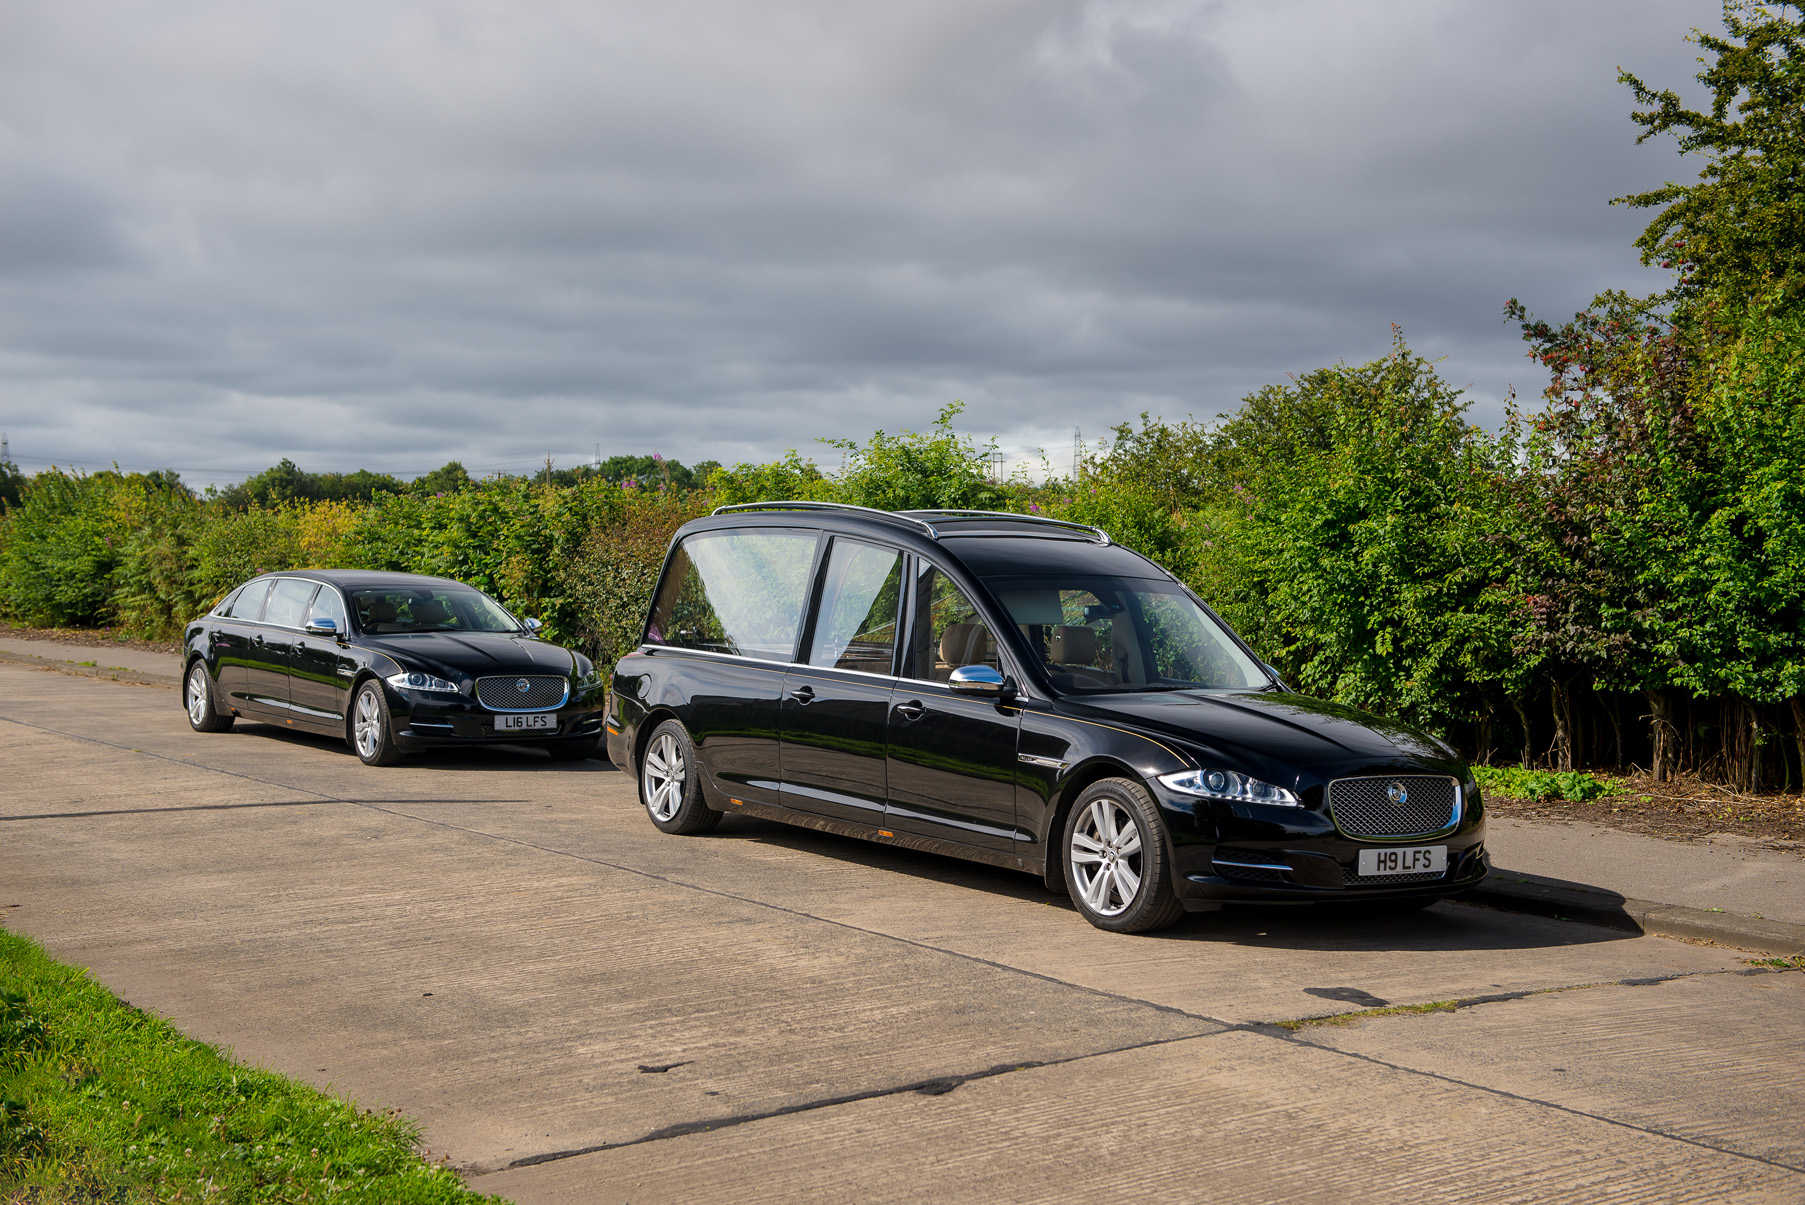 New Jaguar hearse hire